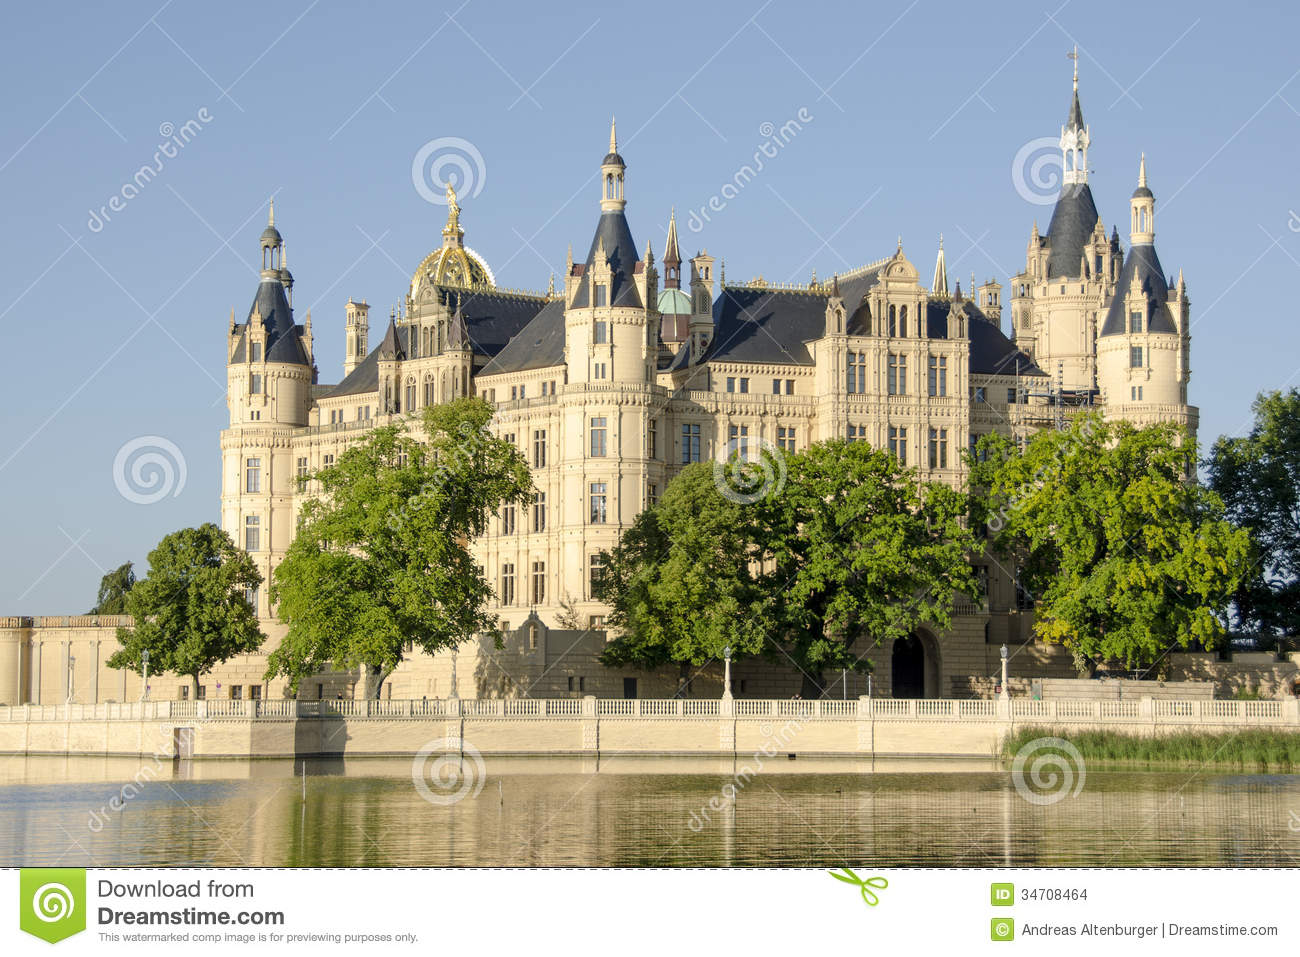 Minecraft Buildings besides 11943 furthermore Stock Images Schwerin Castle Capital Mecklenburg Vorpommern State Germany Image34708464 furthermore Stock Illustration Castle Fortress Vector Logo Set Tower Architecture Icon Building Medieval Fort Illustration Image61114378 further Stock Photos Two Vintage Vertical Roof Windows Red Tiles Image35307533. on palace house plans